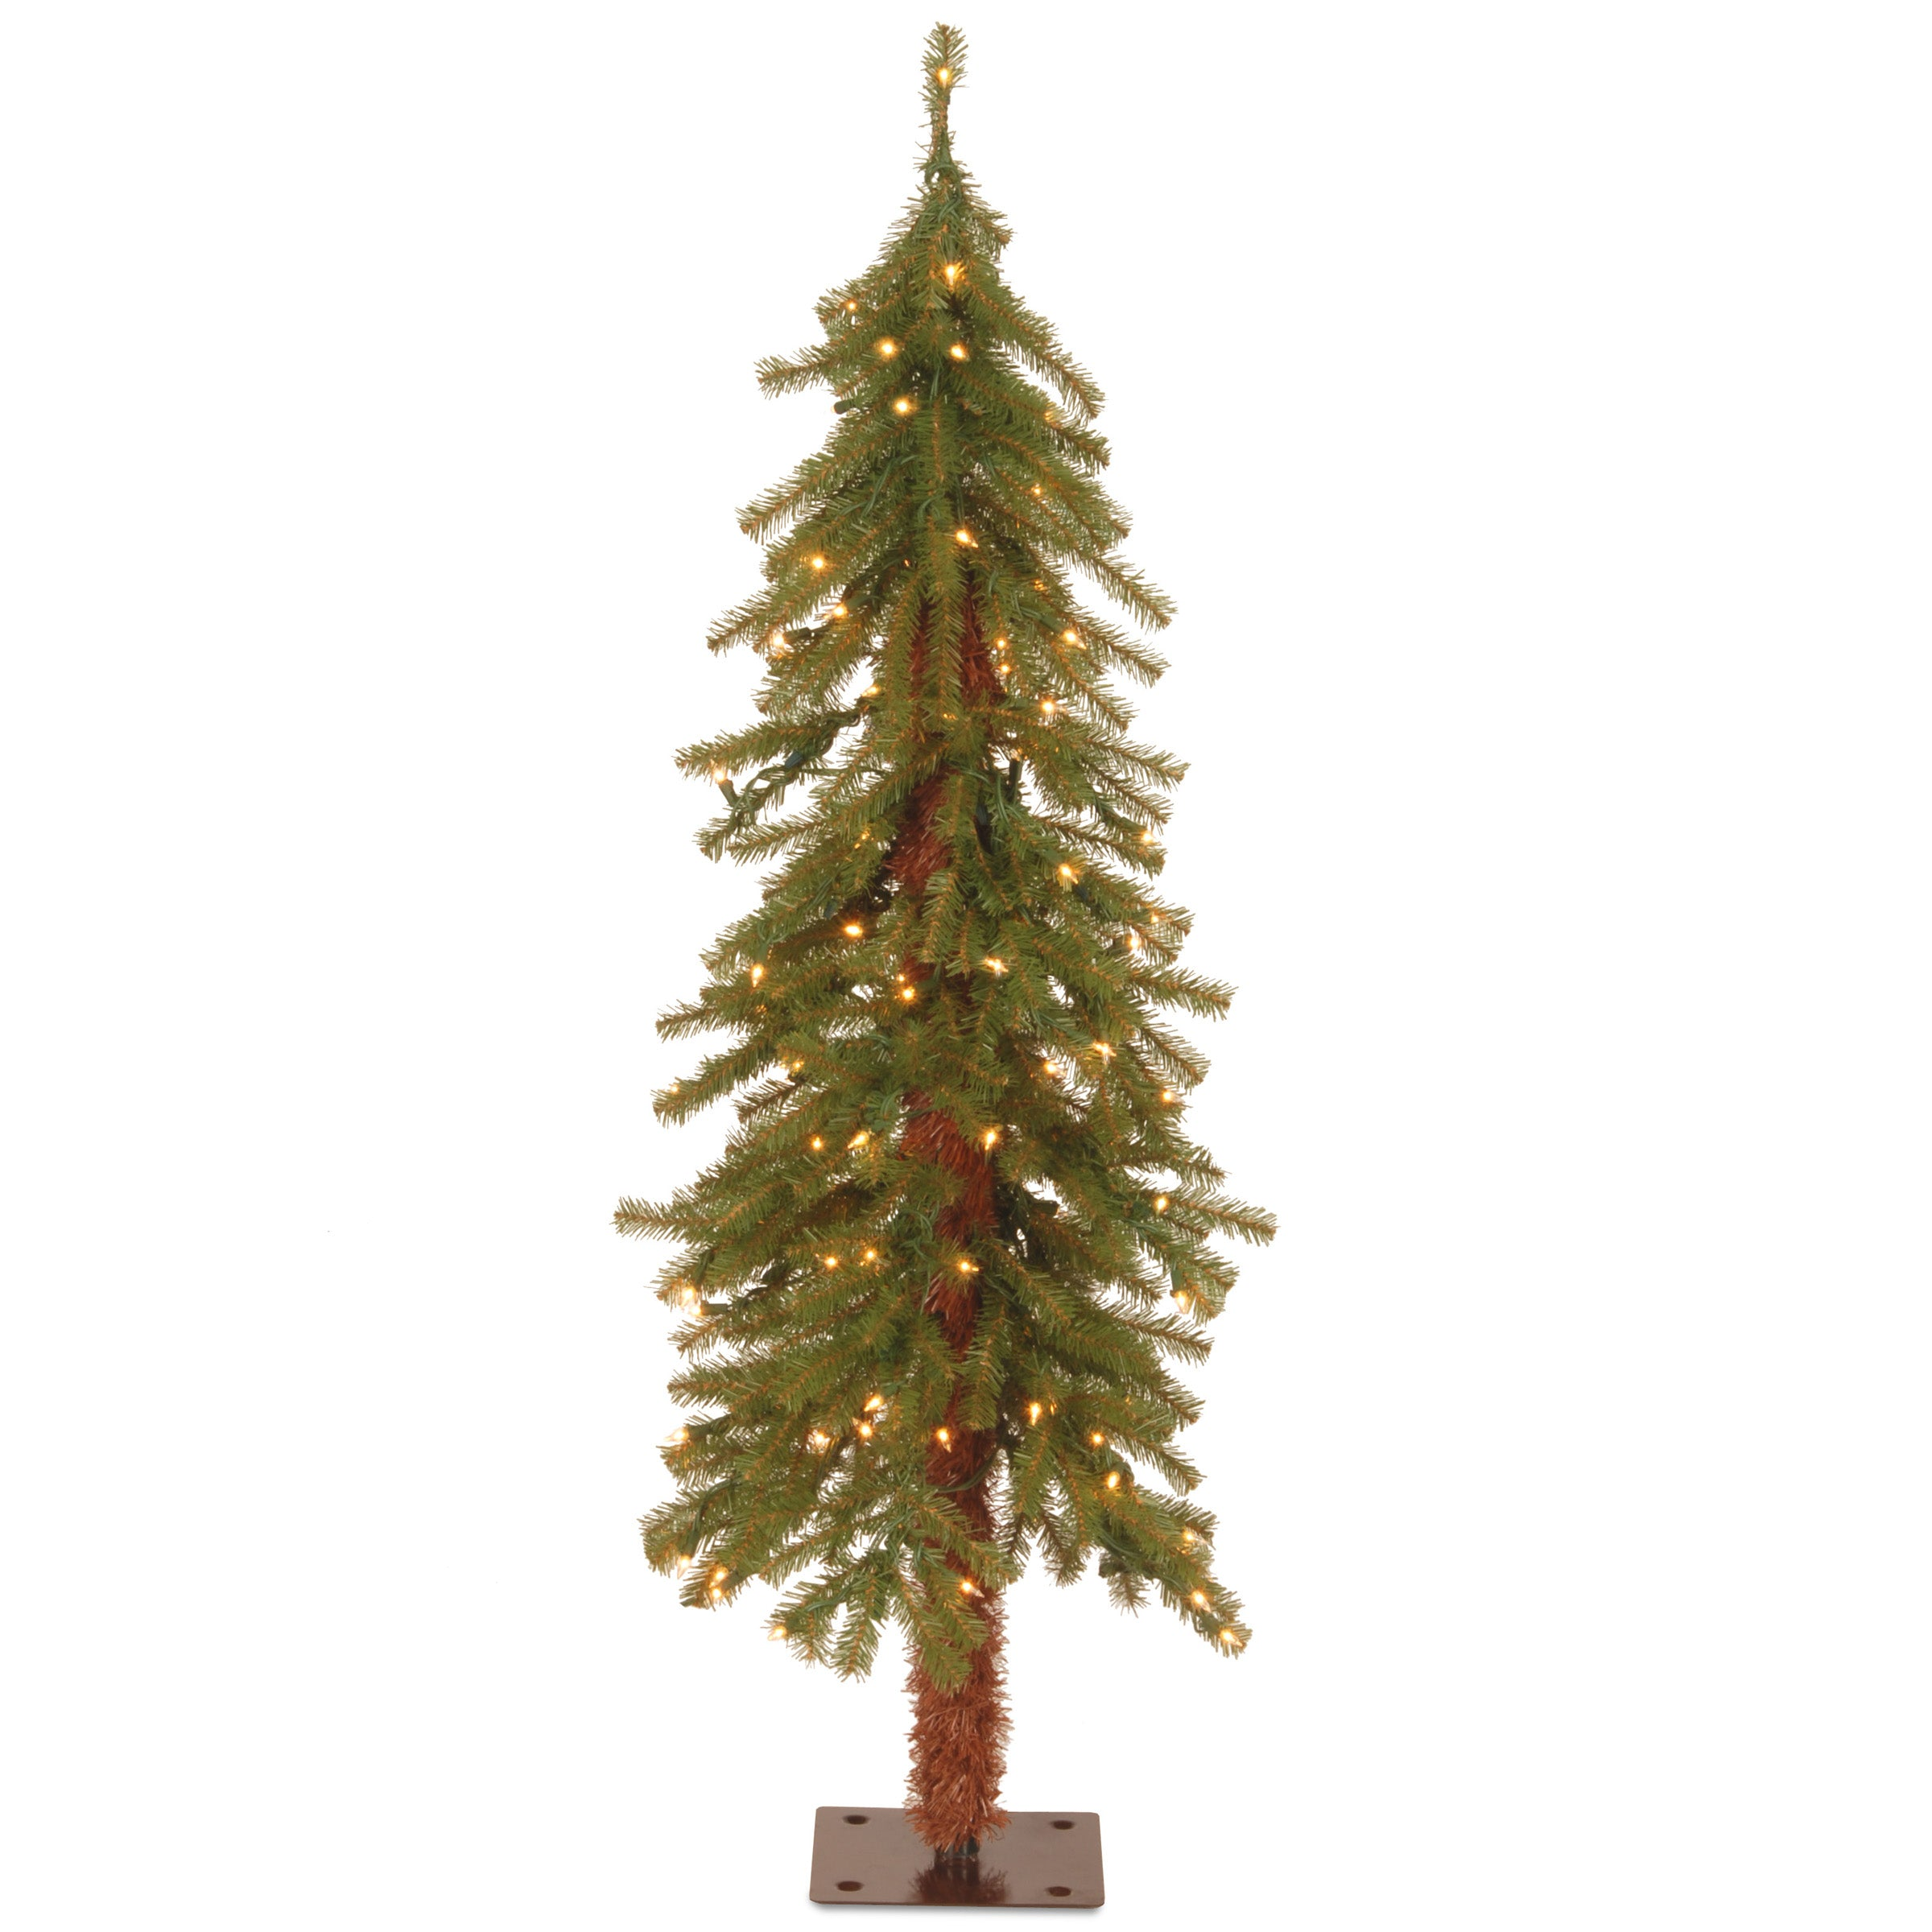 National Tree Ced7-40lo-s 4' Hickory Cedar Tree With 100 ...